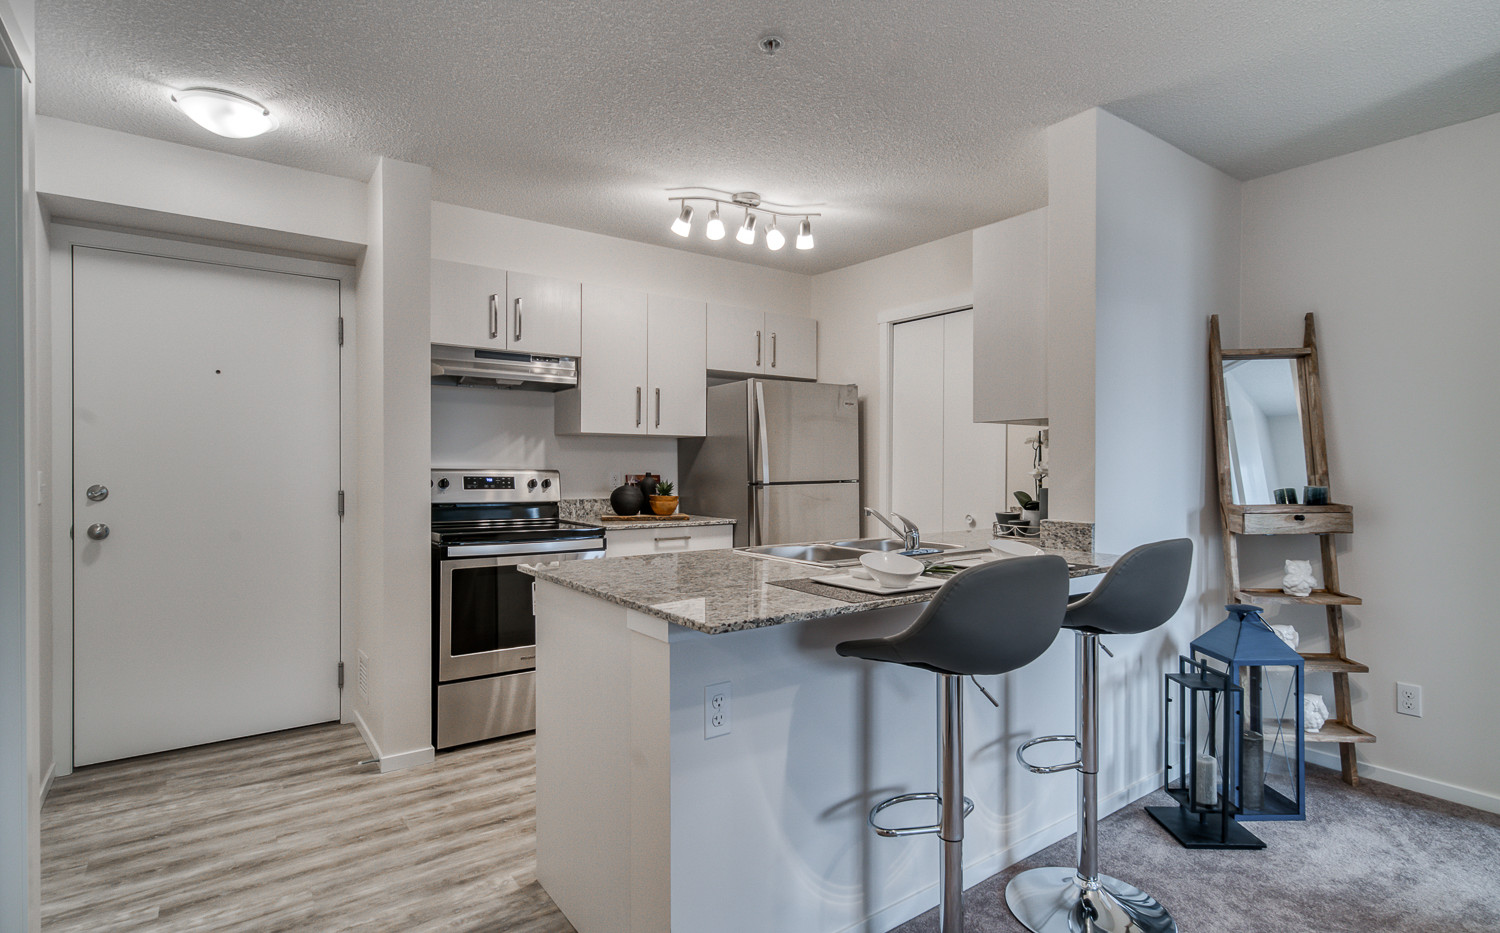 Discovery - 2 Bedroom